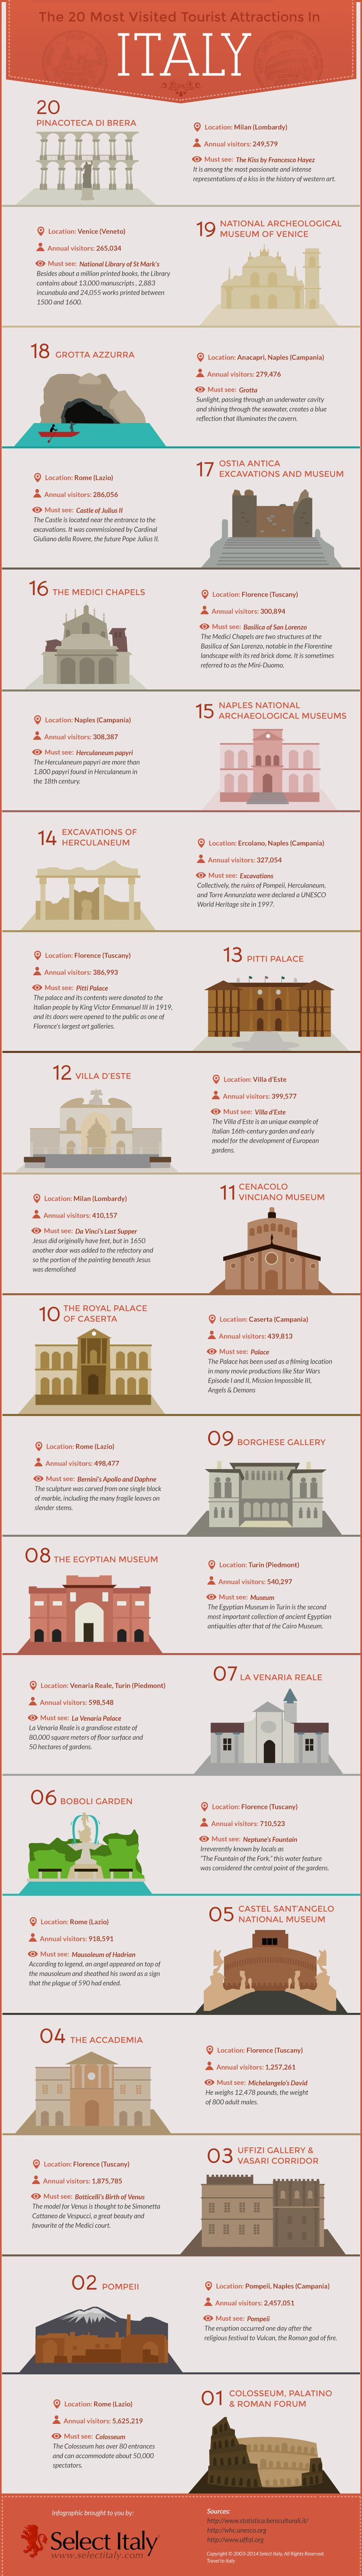 The 20 Most Visited Tourist Attractions in Italy [INFOGRAPHIC] #italy #infographic #travel